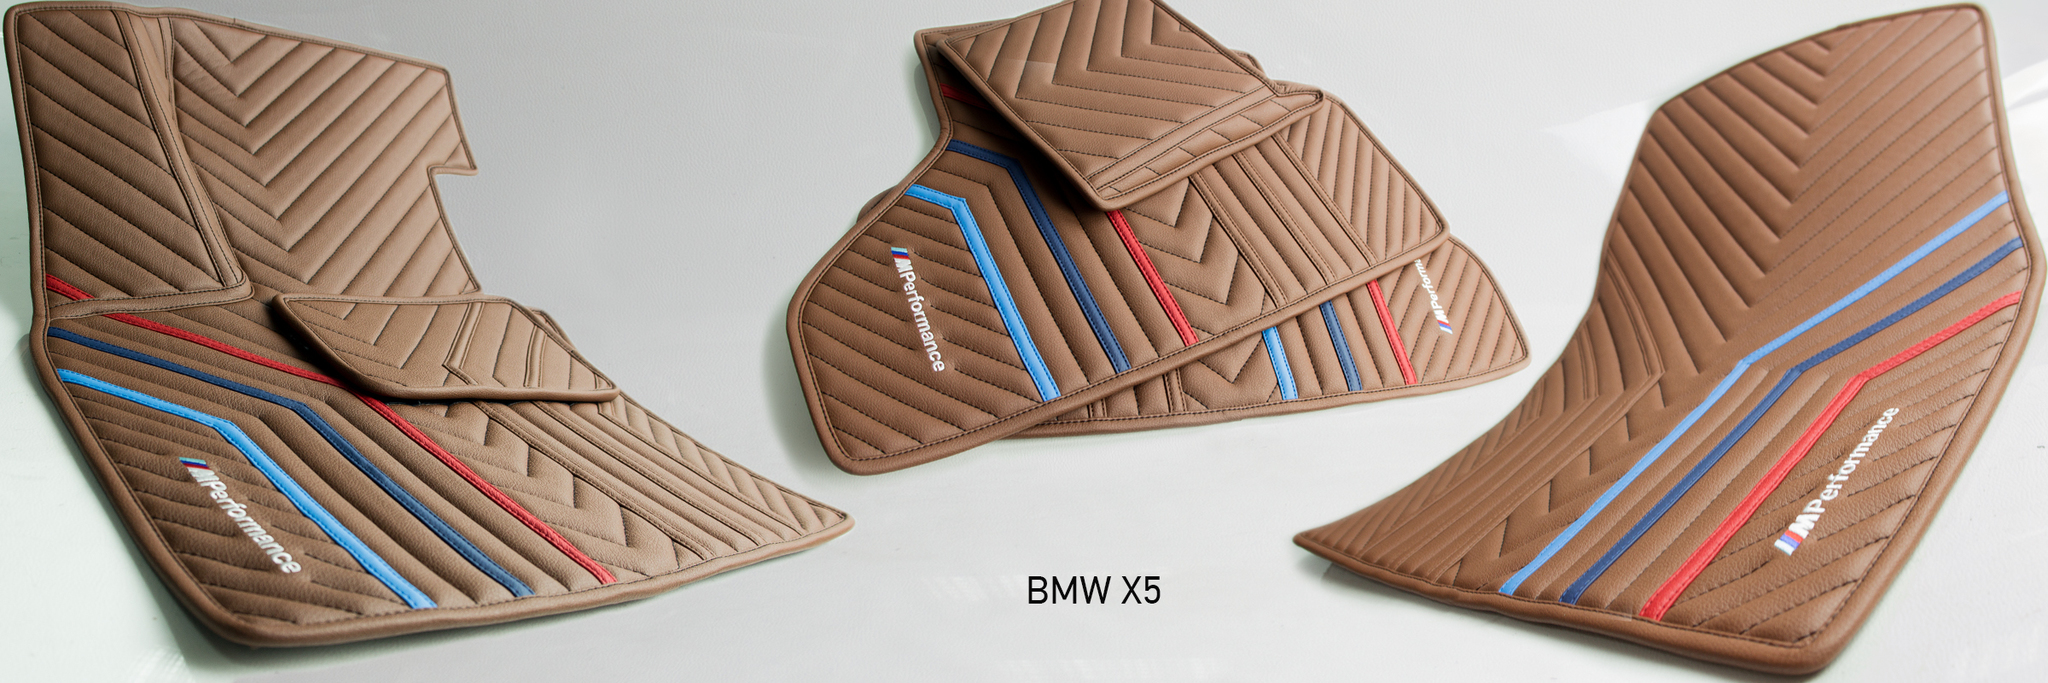 images-products-1-7890-232988370-BMW_X5.jpg